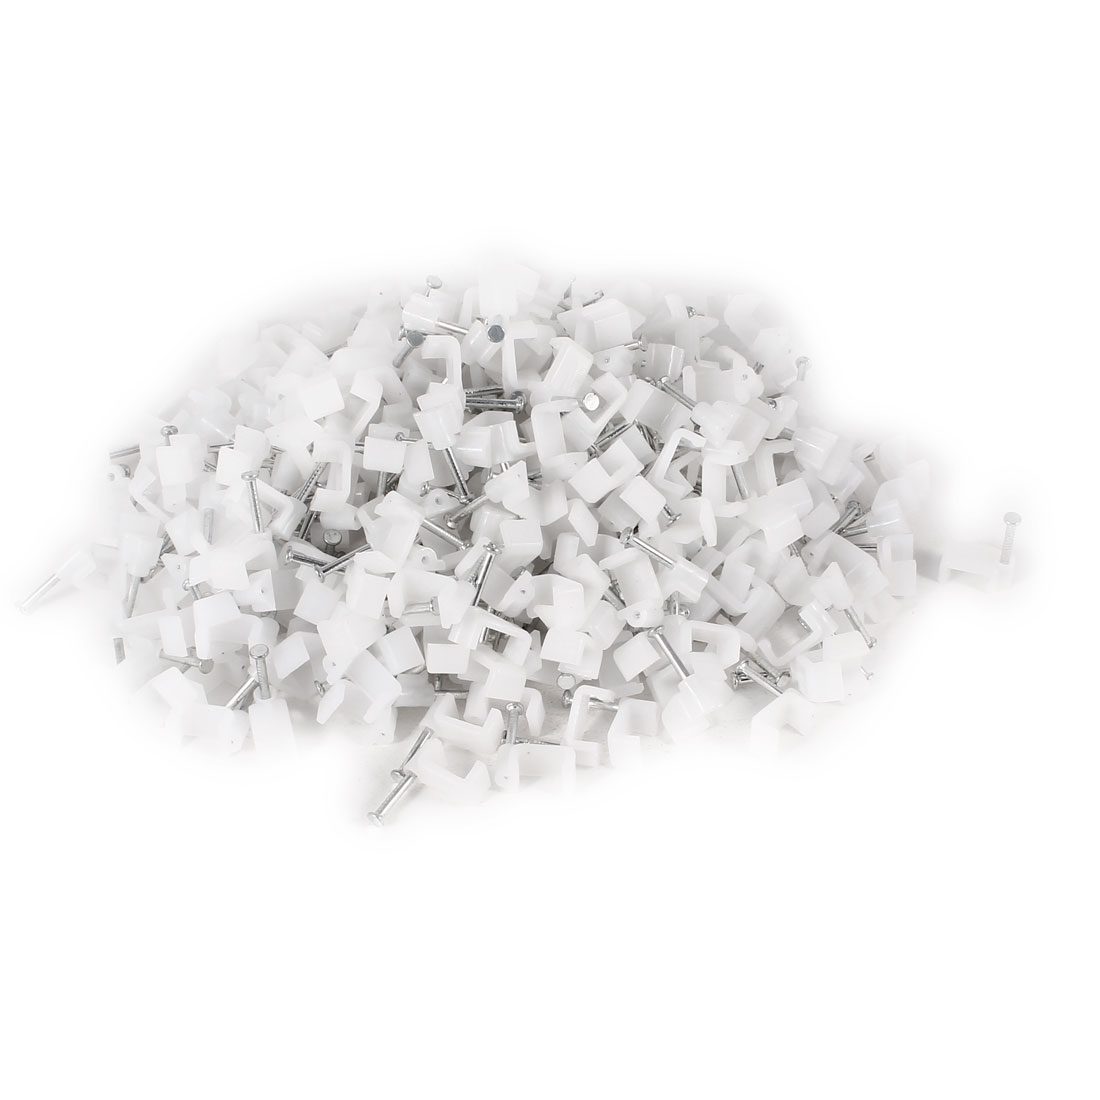 500 Pcs White Plastic Wall Insert 10mm Width Square Cable Mount Nail Clips